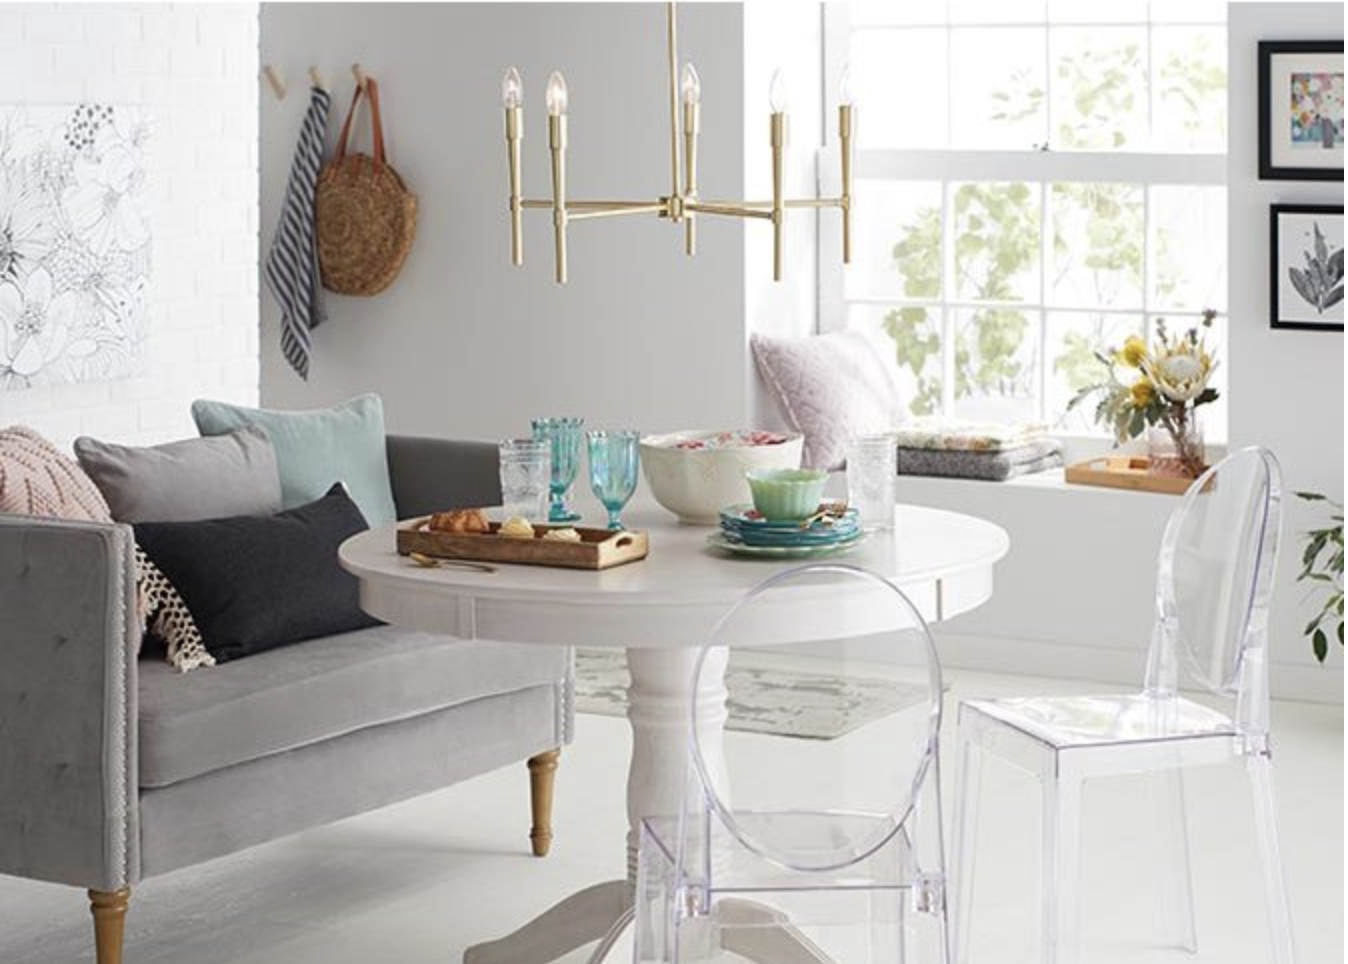 Vintage Chic Bathroom Update shop by style walmart gold lighting white table acrylic chairs